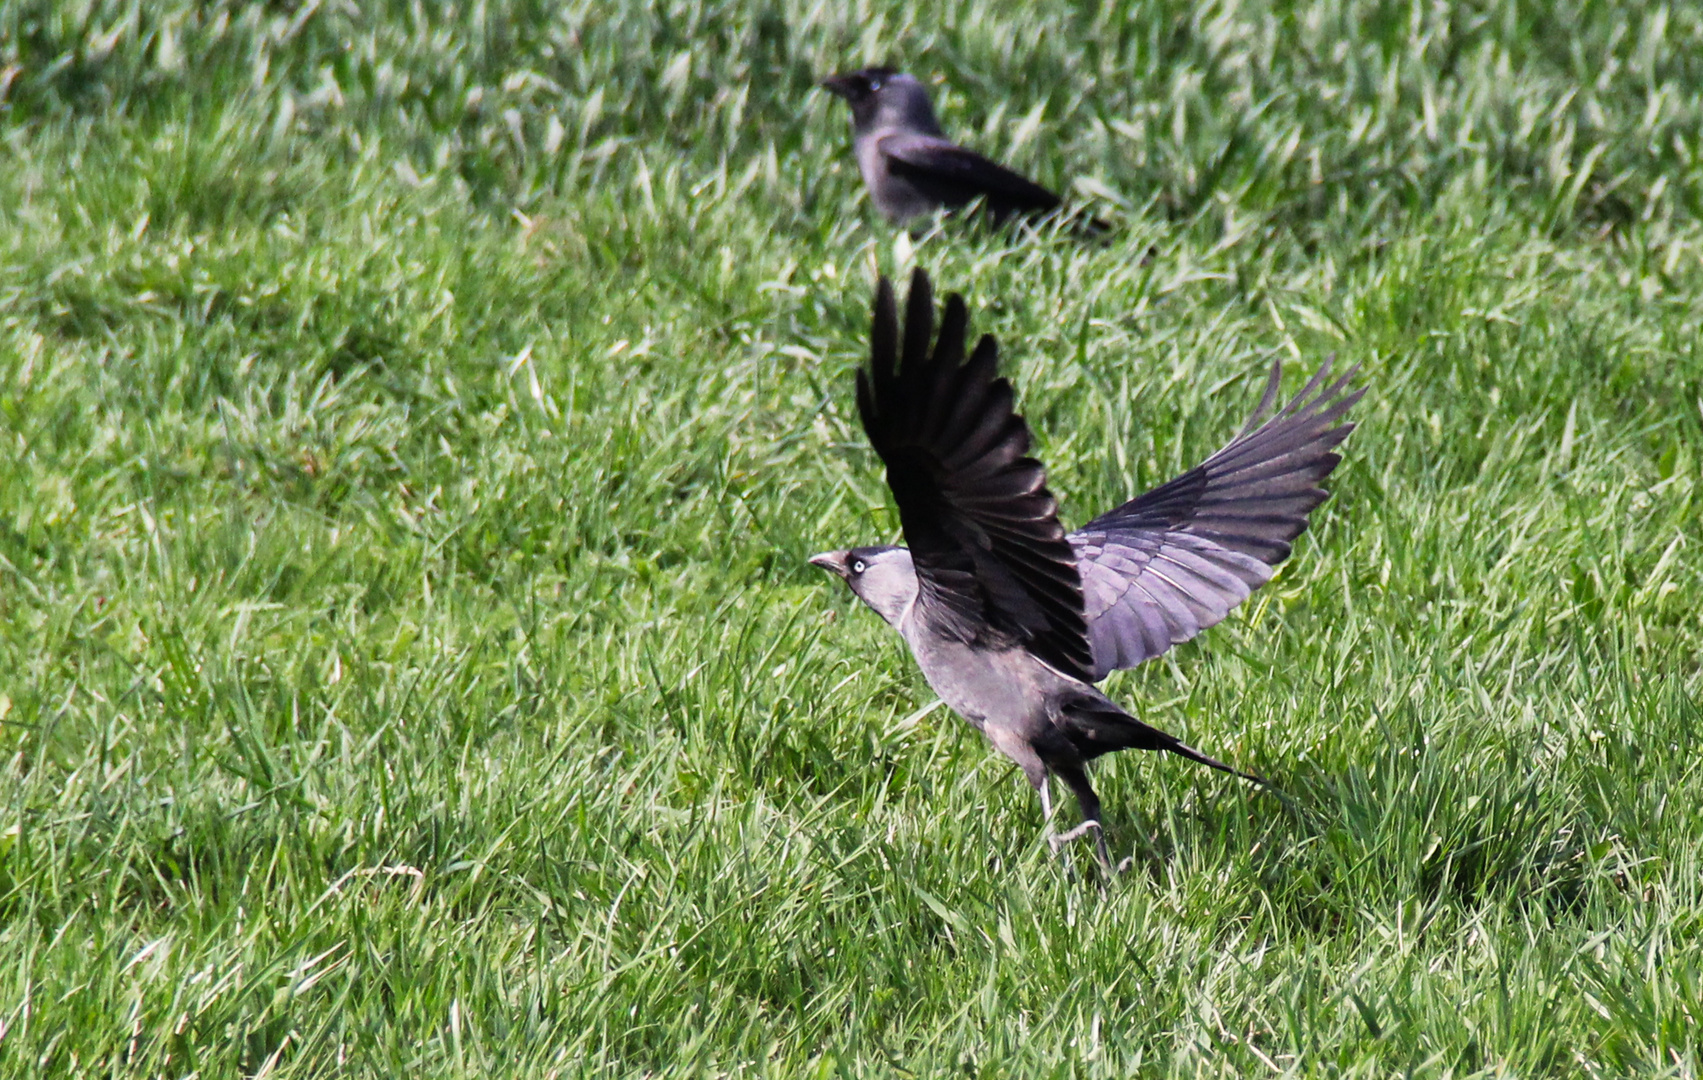 Getting it started